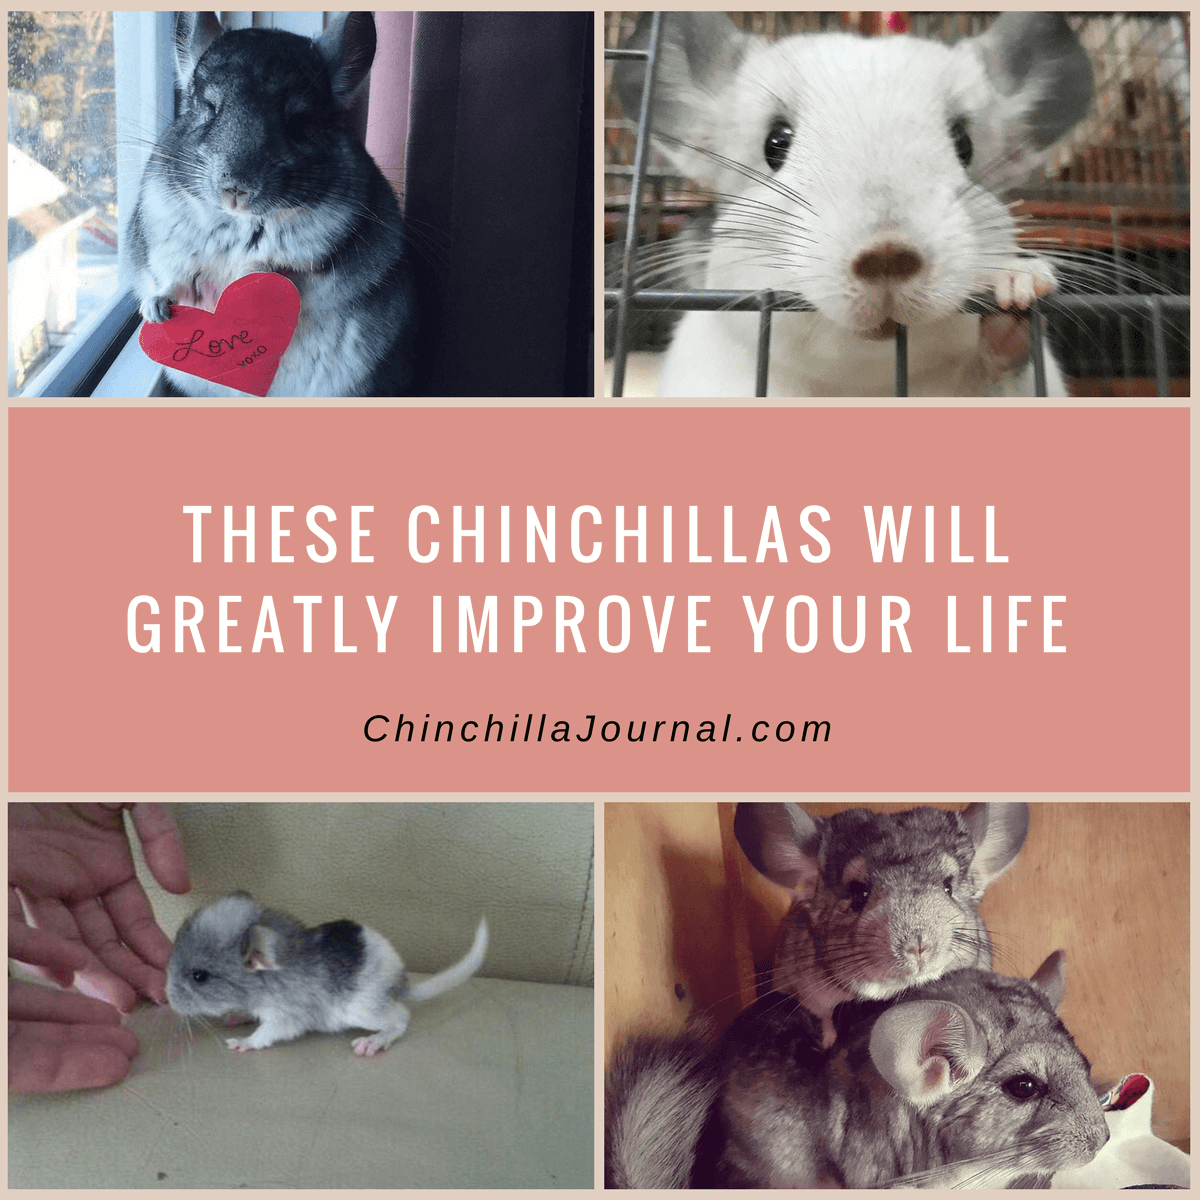 These Chinchillas Will Greatly Improve Your Life